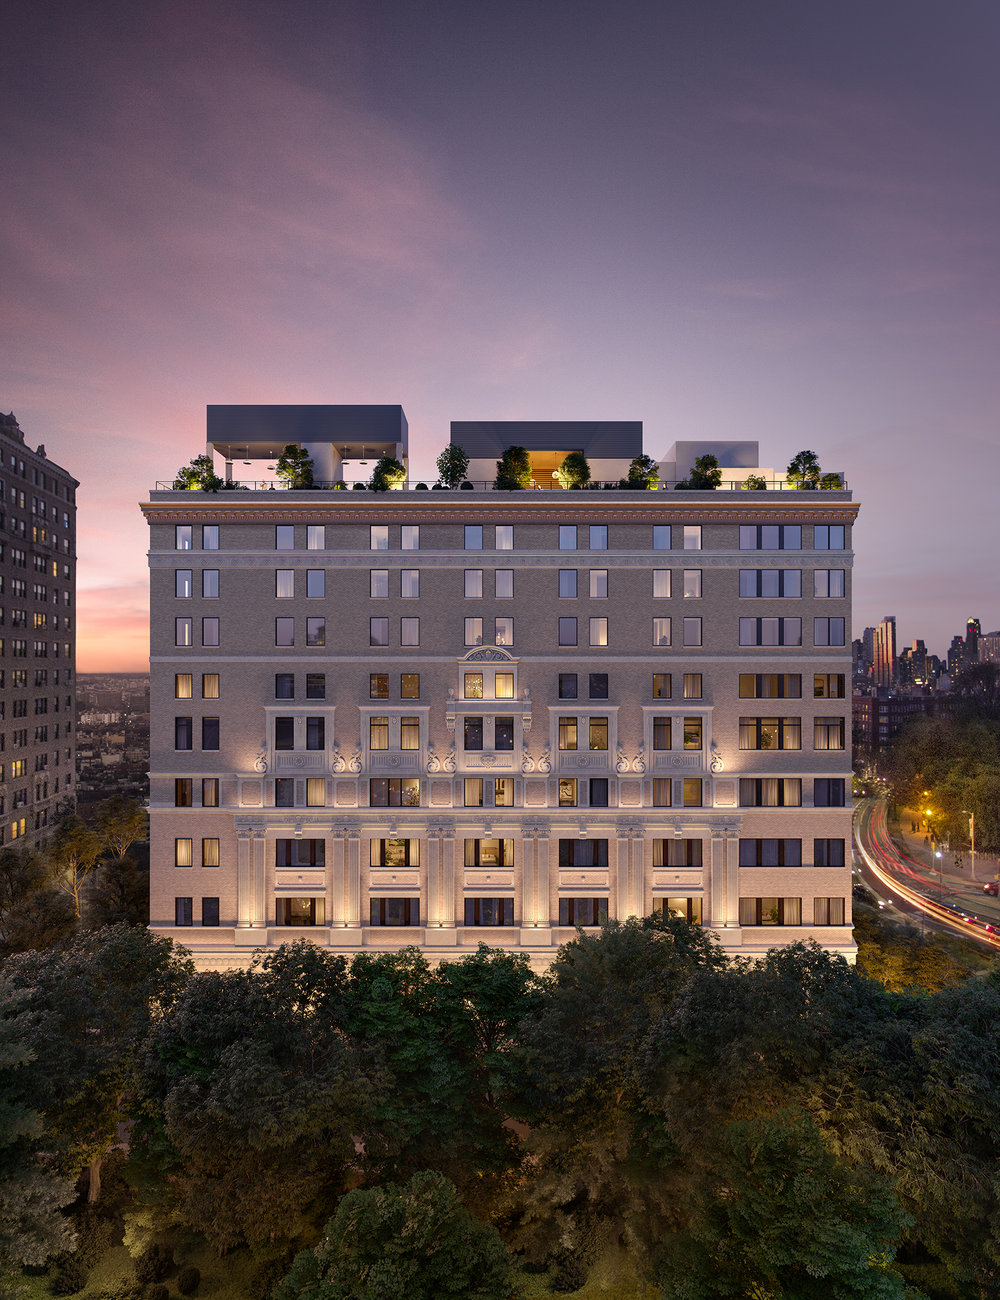 Sugar Hill Capital Partners Reveal One Prospect Park In Park Slope, Brooklyn